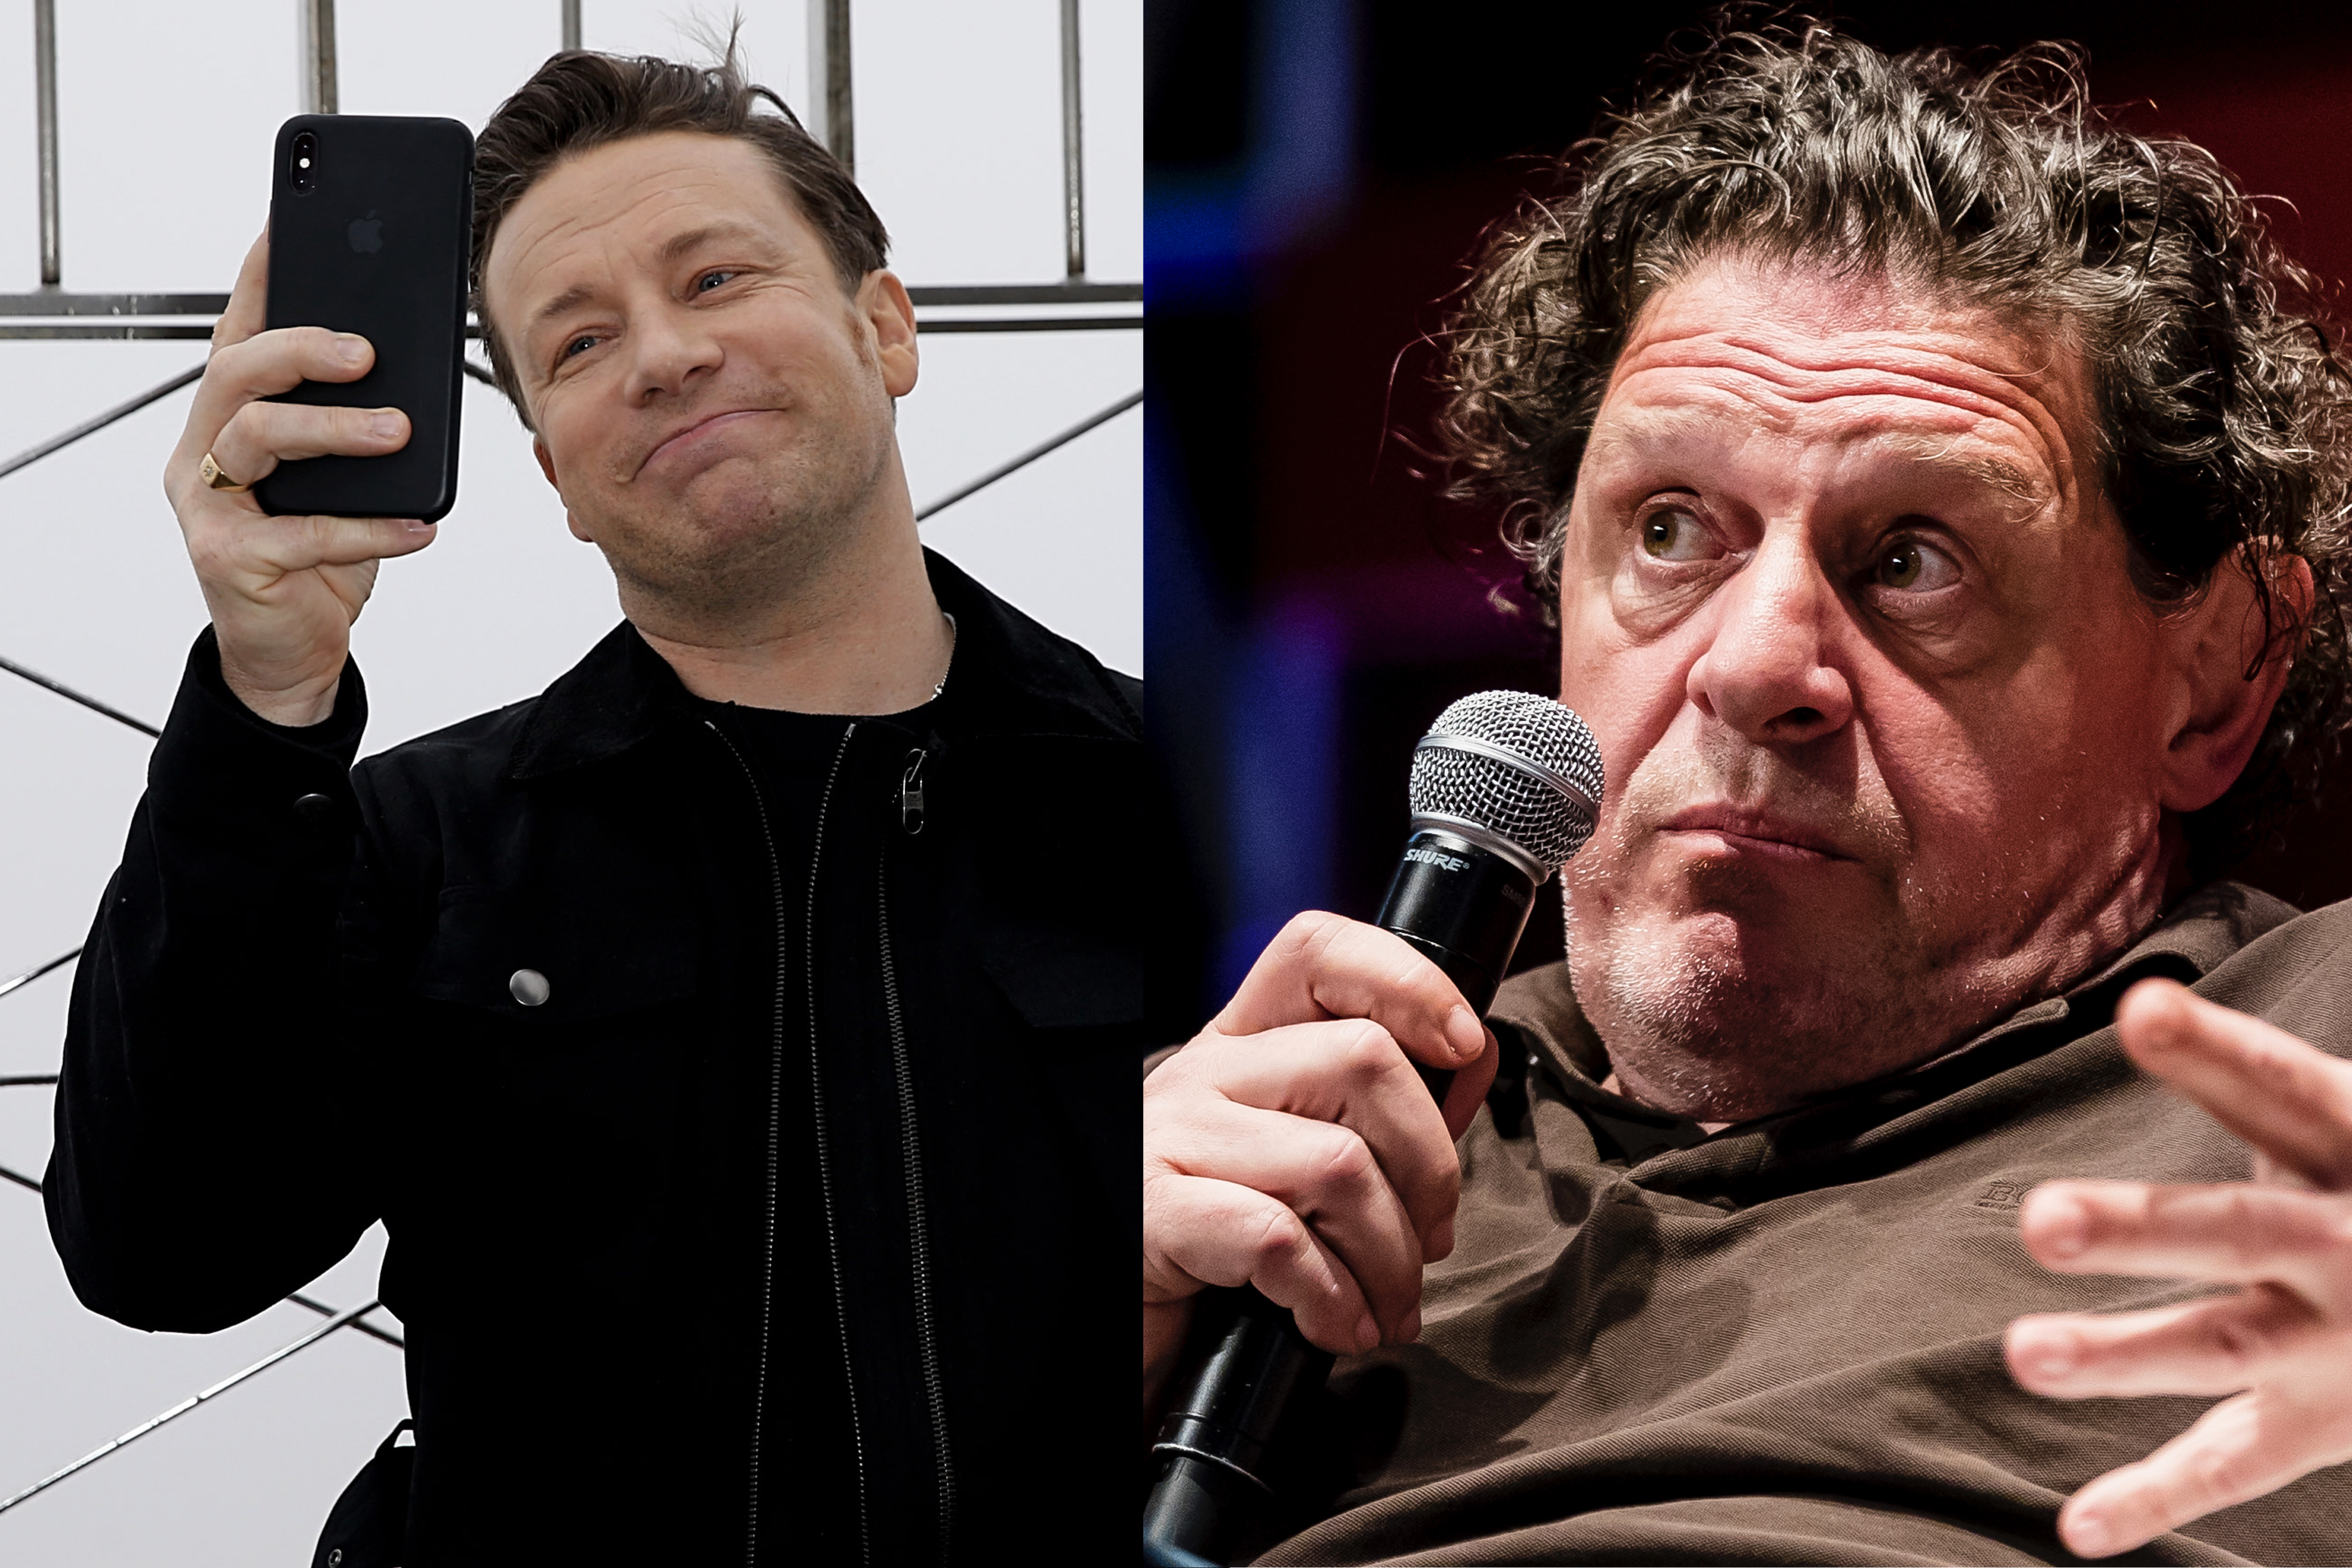 Jamie Oliver and Marco Pierre White Are Trading Schoolboy Insults Like It's 1999